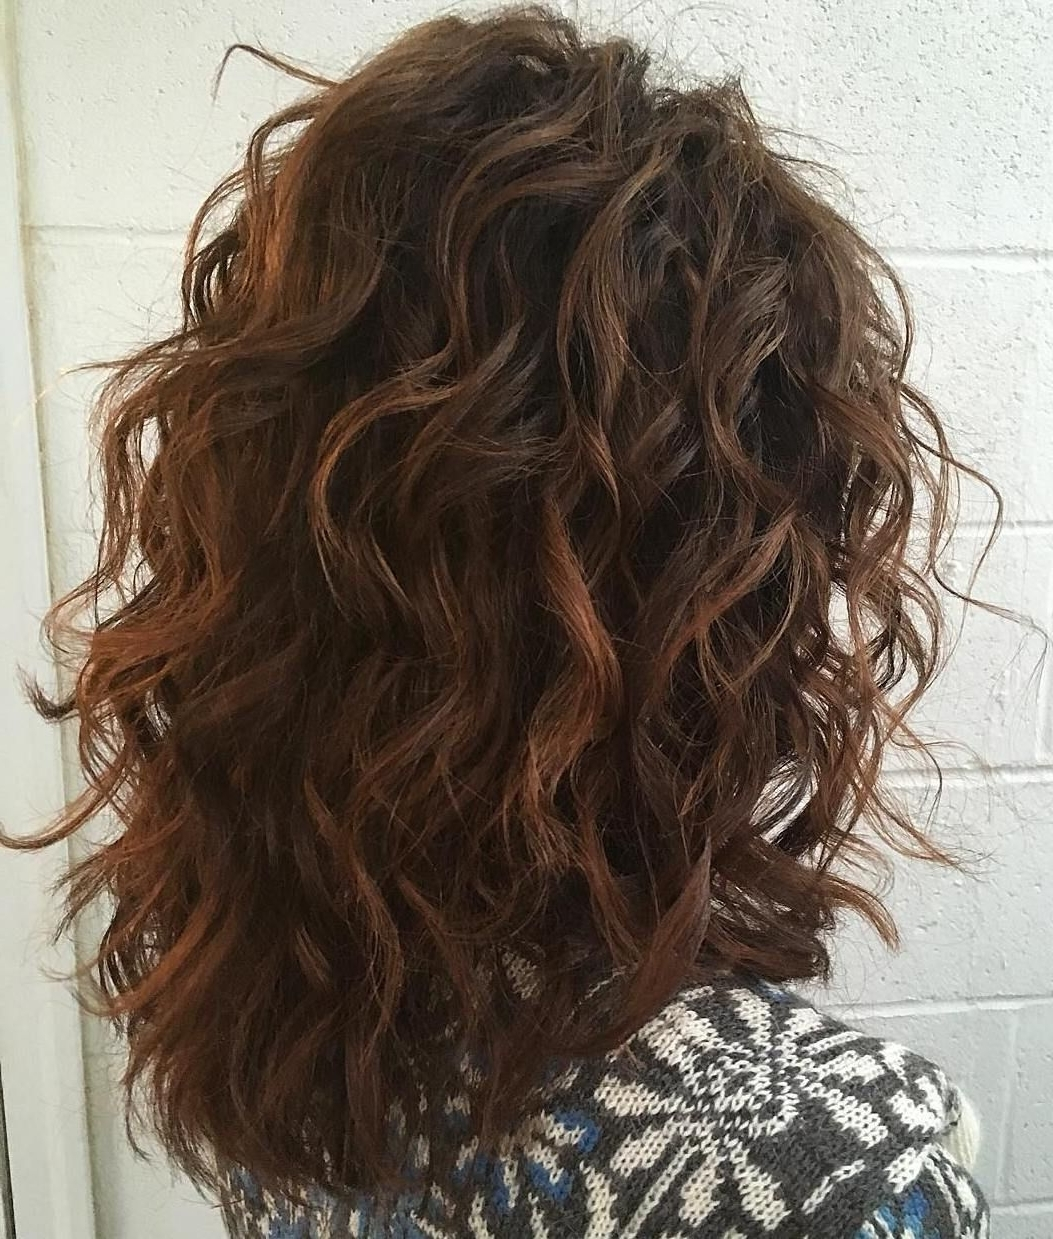 Pin On Cute Long Hairstyles 20+ Adorable Medium Hairstyles Curly Thick Hair